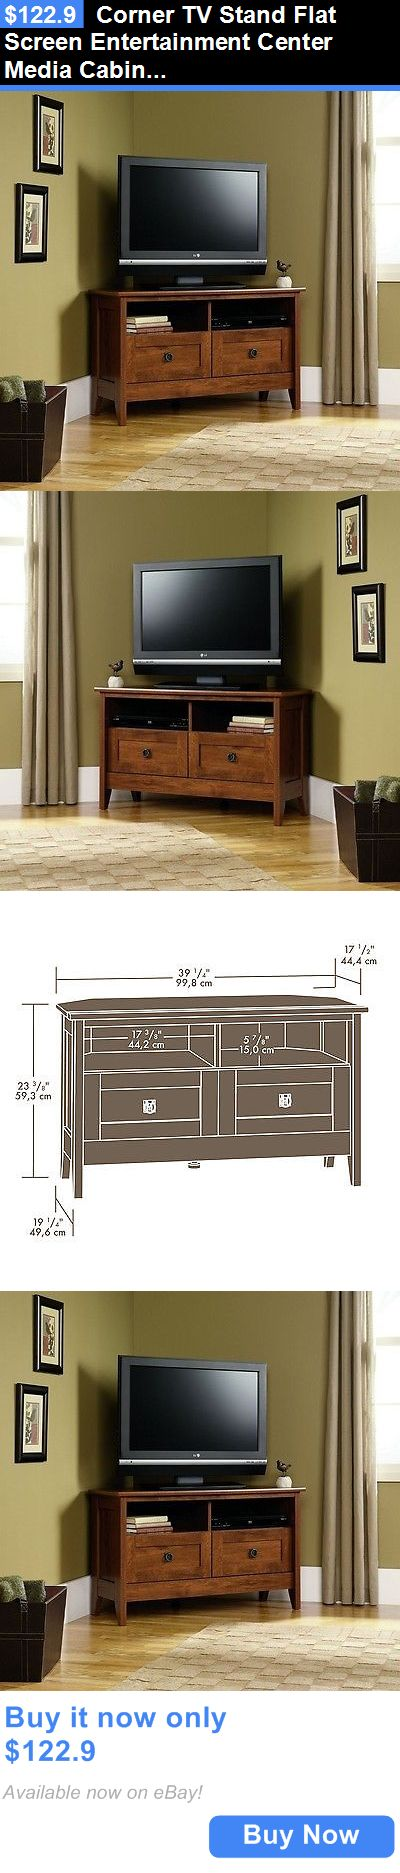 Entertainment Units TV Stands: Corner Tv Stand Flat Screen Entertainment Center Media Cabinet Oak Wood Console BUY IT NOW ONLY: $122.9